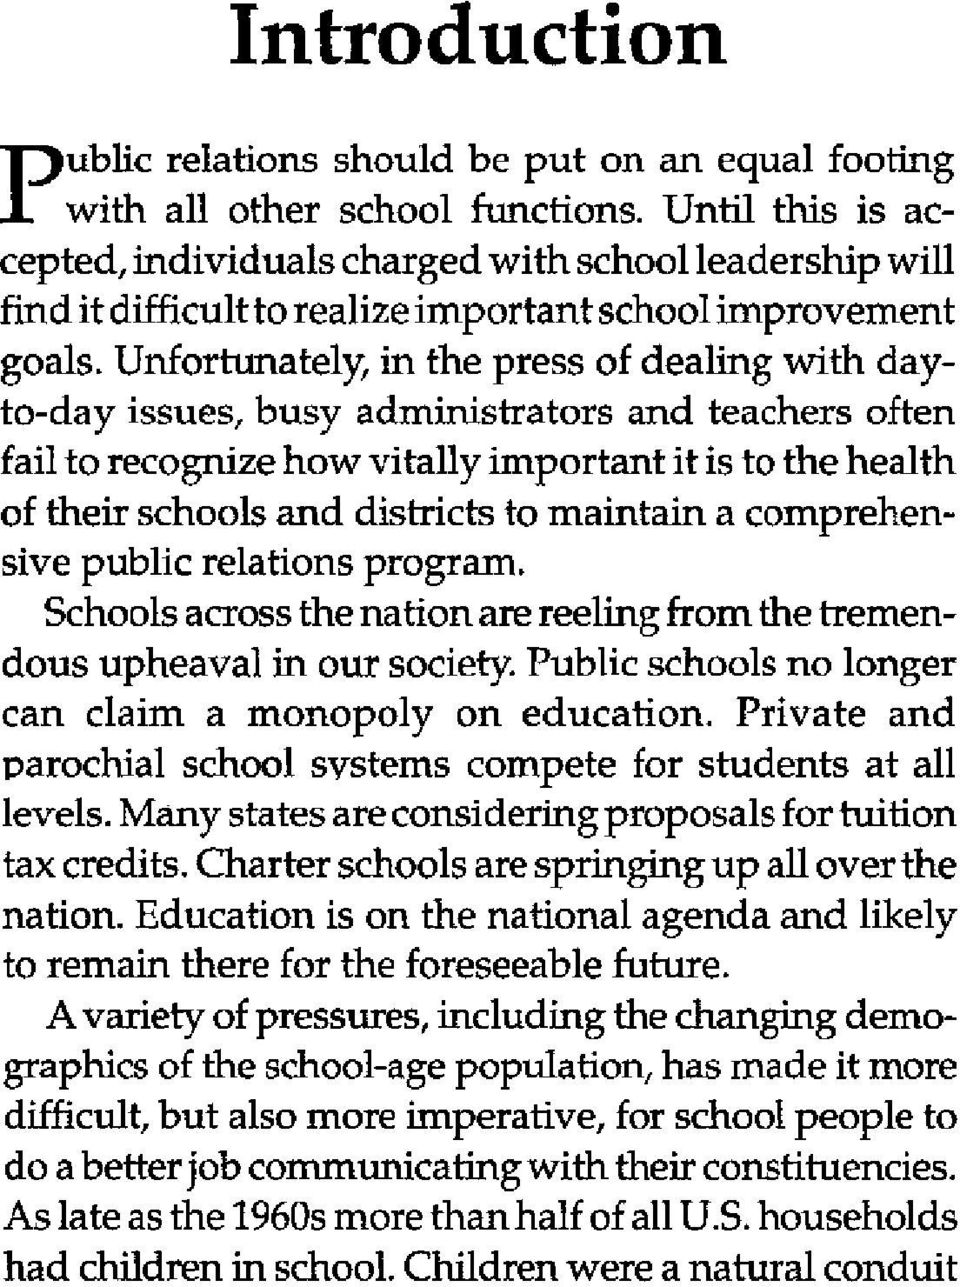 Unfortunately, in the press of dealing with dayto-day issues, busy administrators and teachers often fail to recognize how vitally important it is to the health of their schools and districts